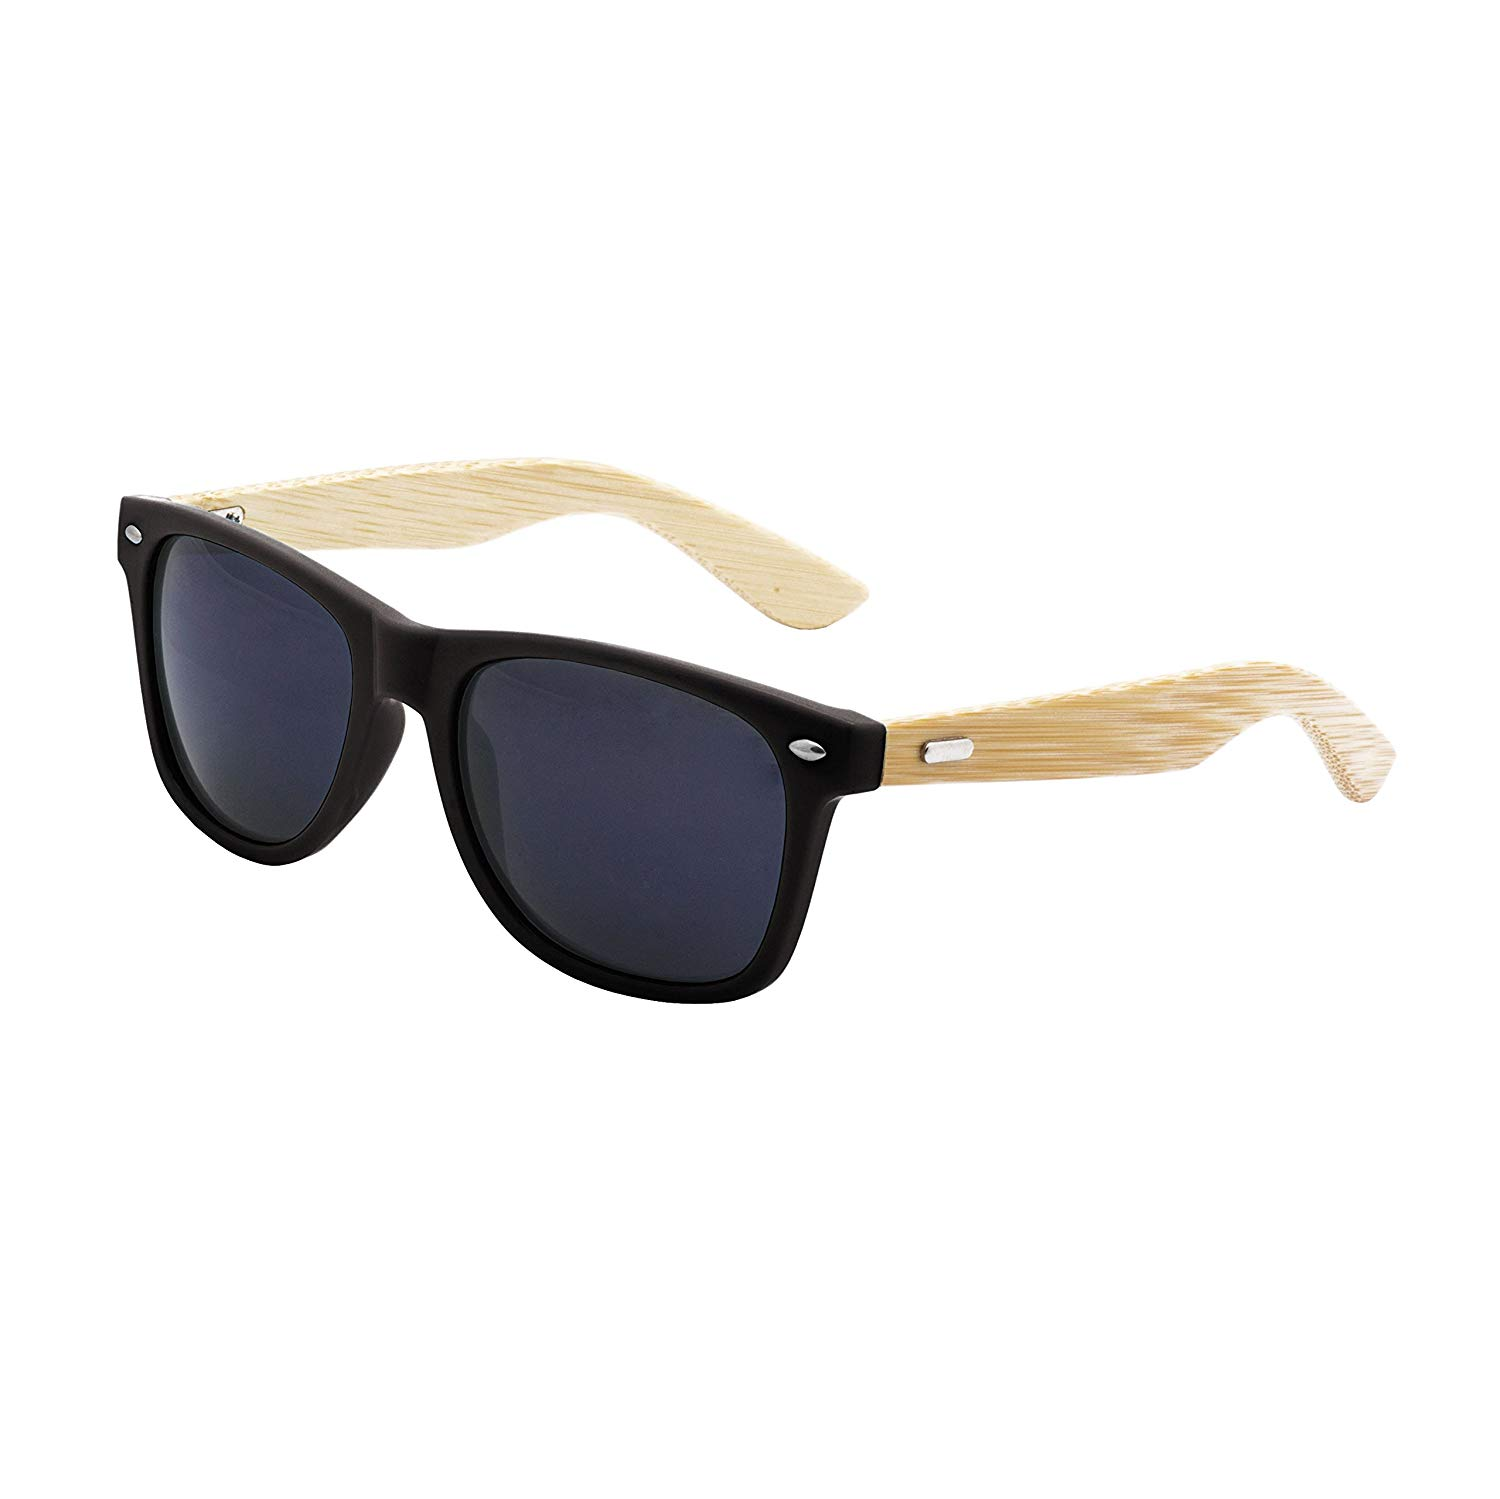 9a52e30c8d8 Buy LogoLenses Mens Bamboo Wood Arms Classic Sunglasses in Cheap ...